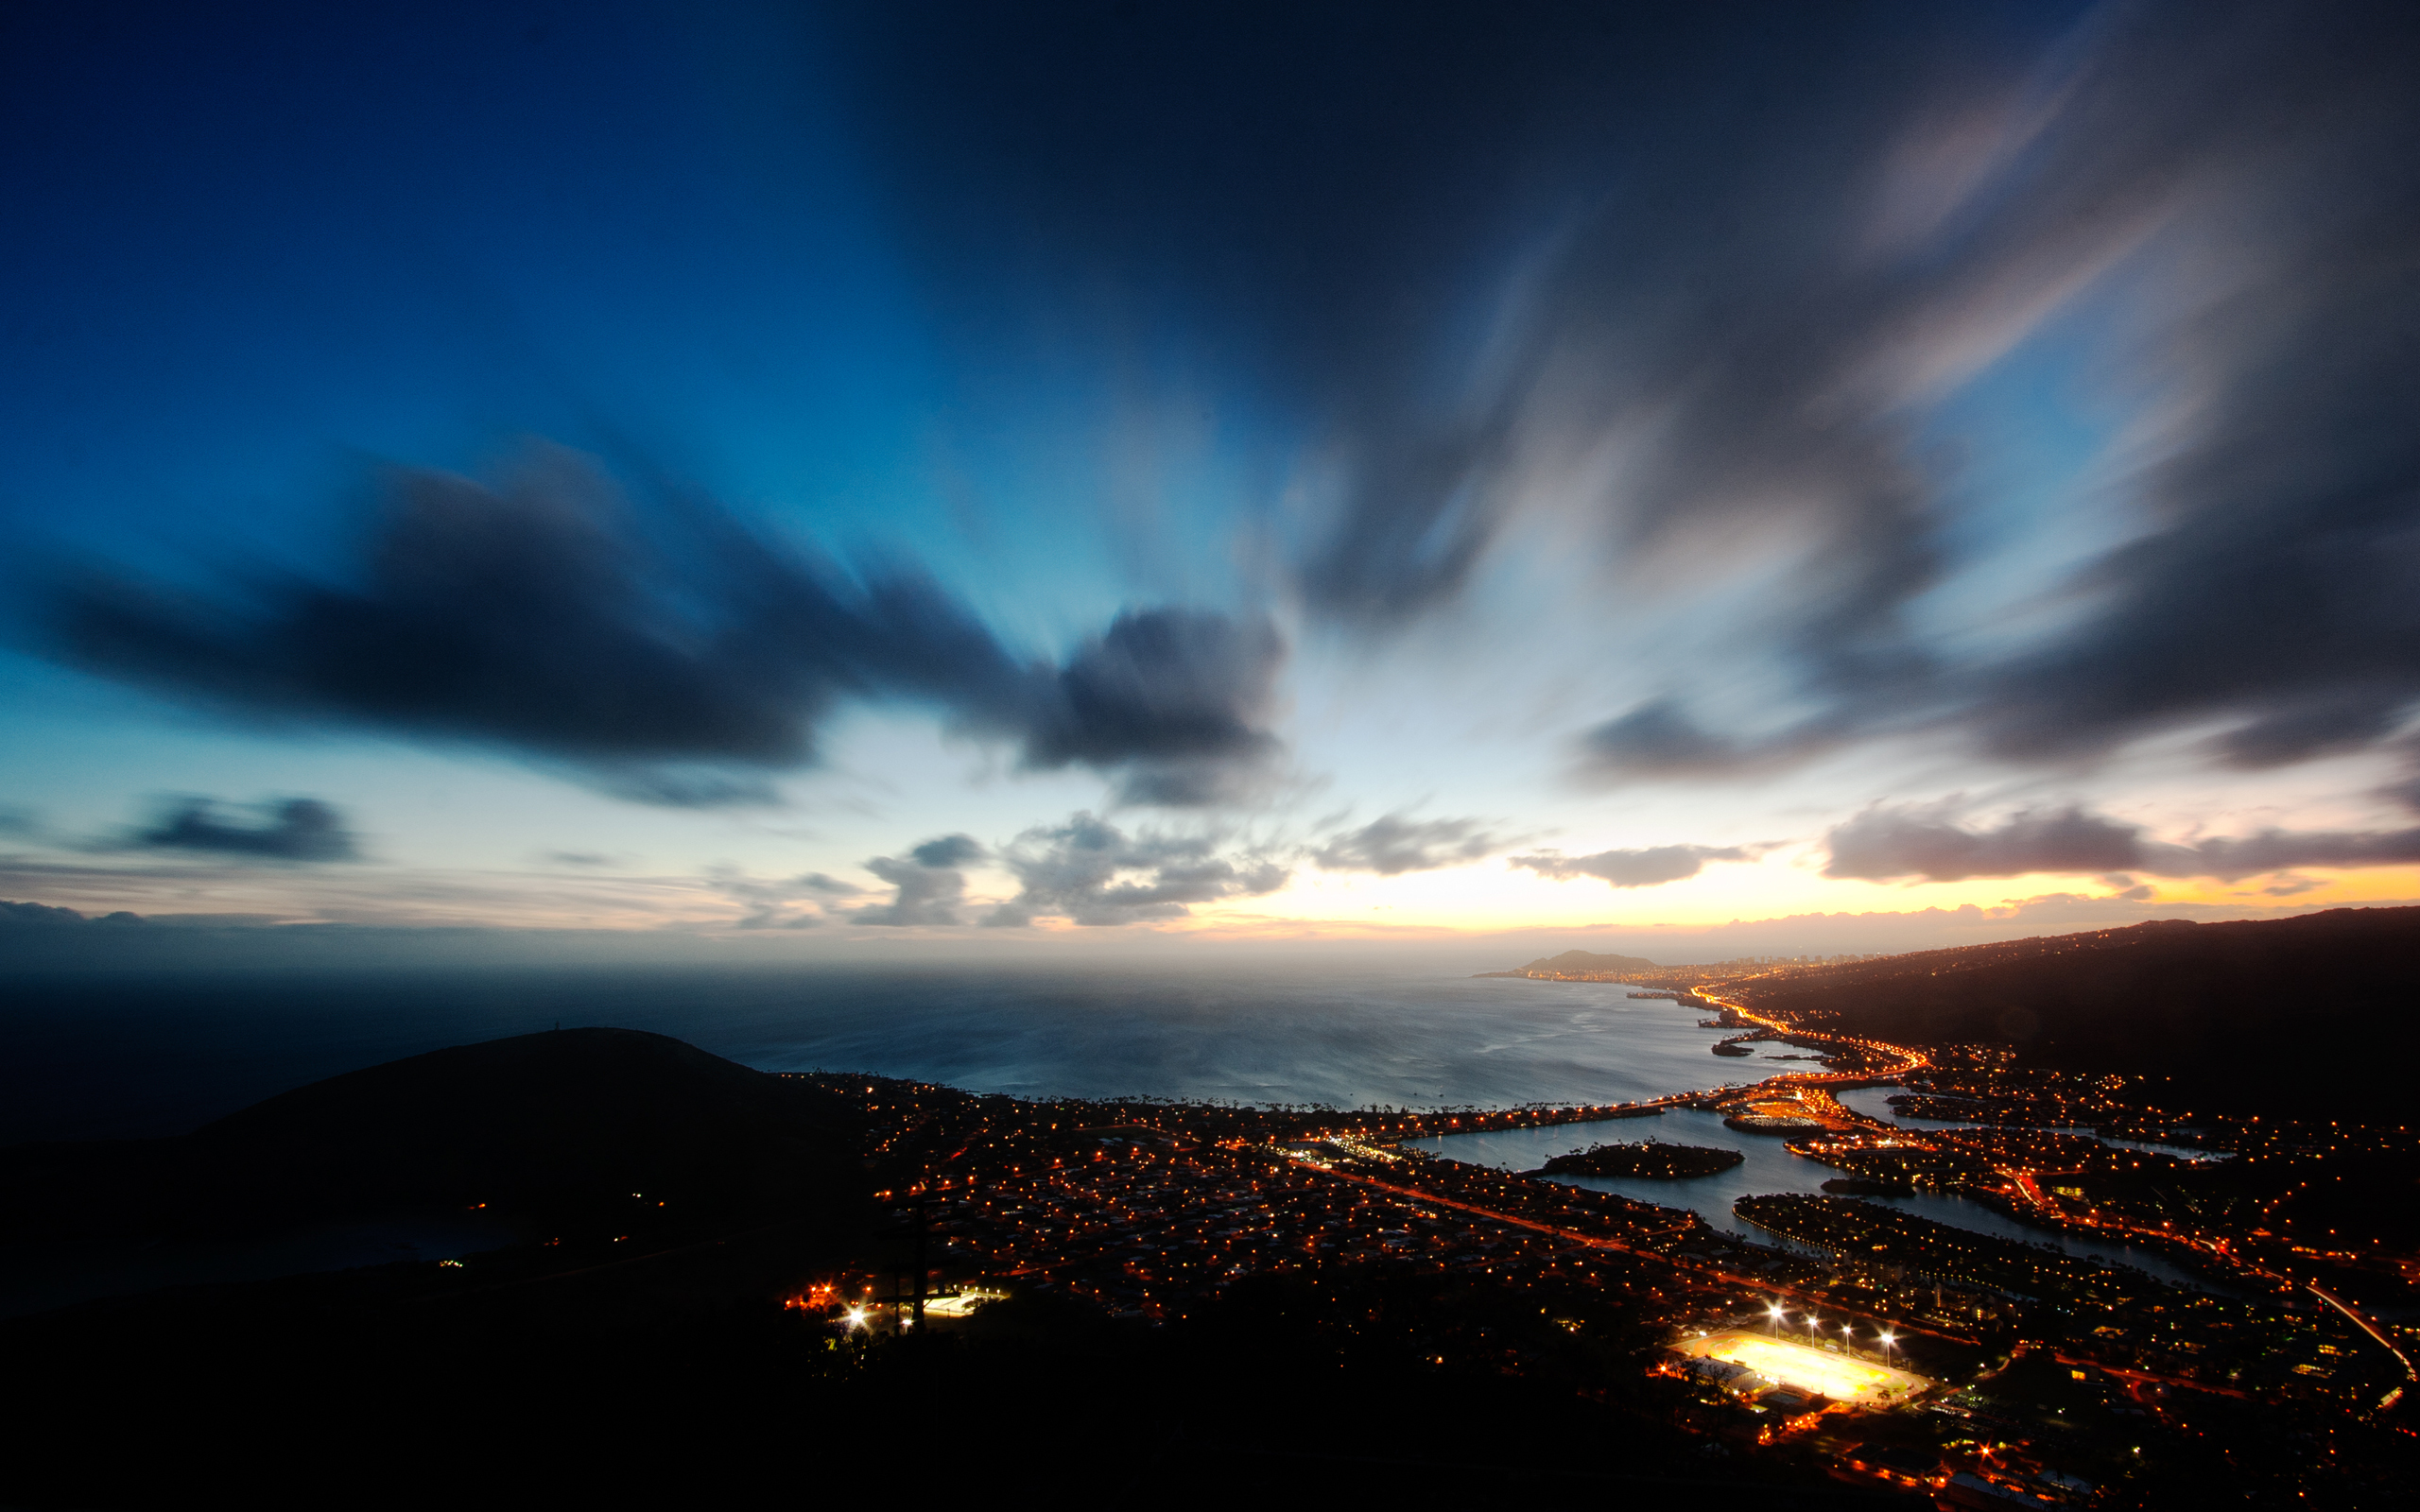 Man Made - City  Hawaii Kai USA Night Sky Cloud Wallpaper